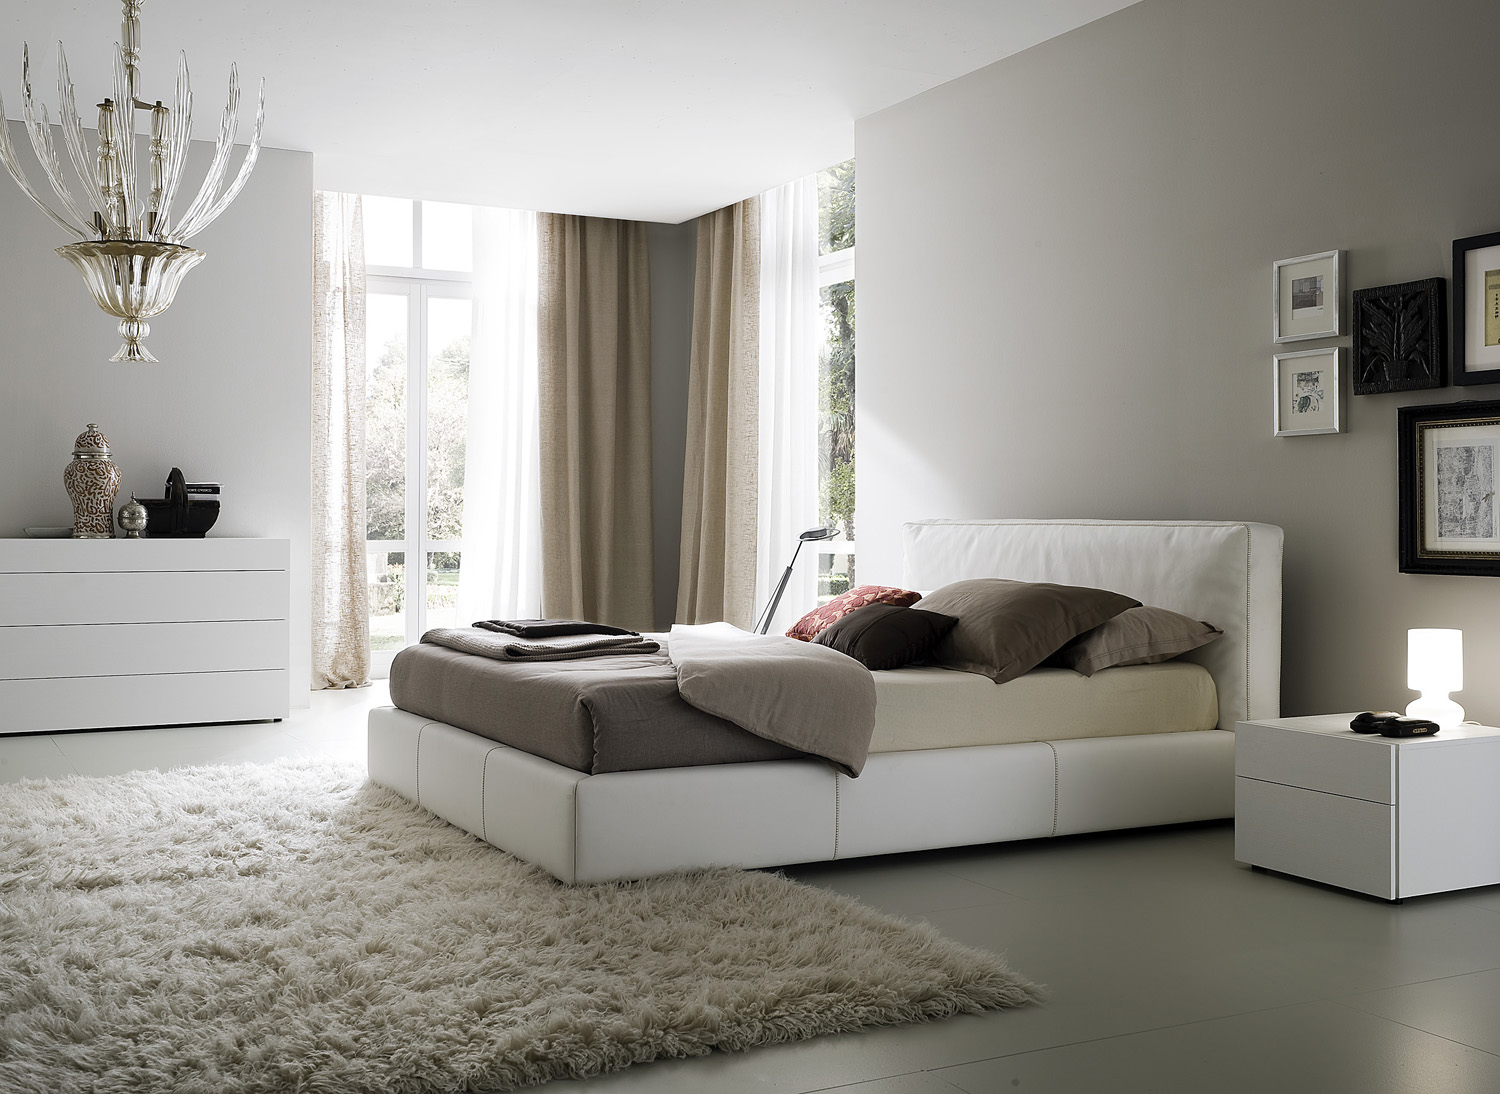 Bedroom decorating ideas from evinco for Bedroom picture ideas